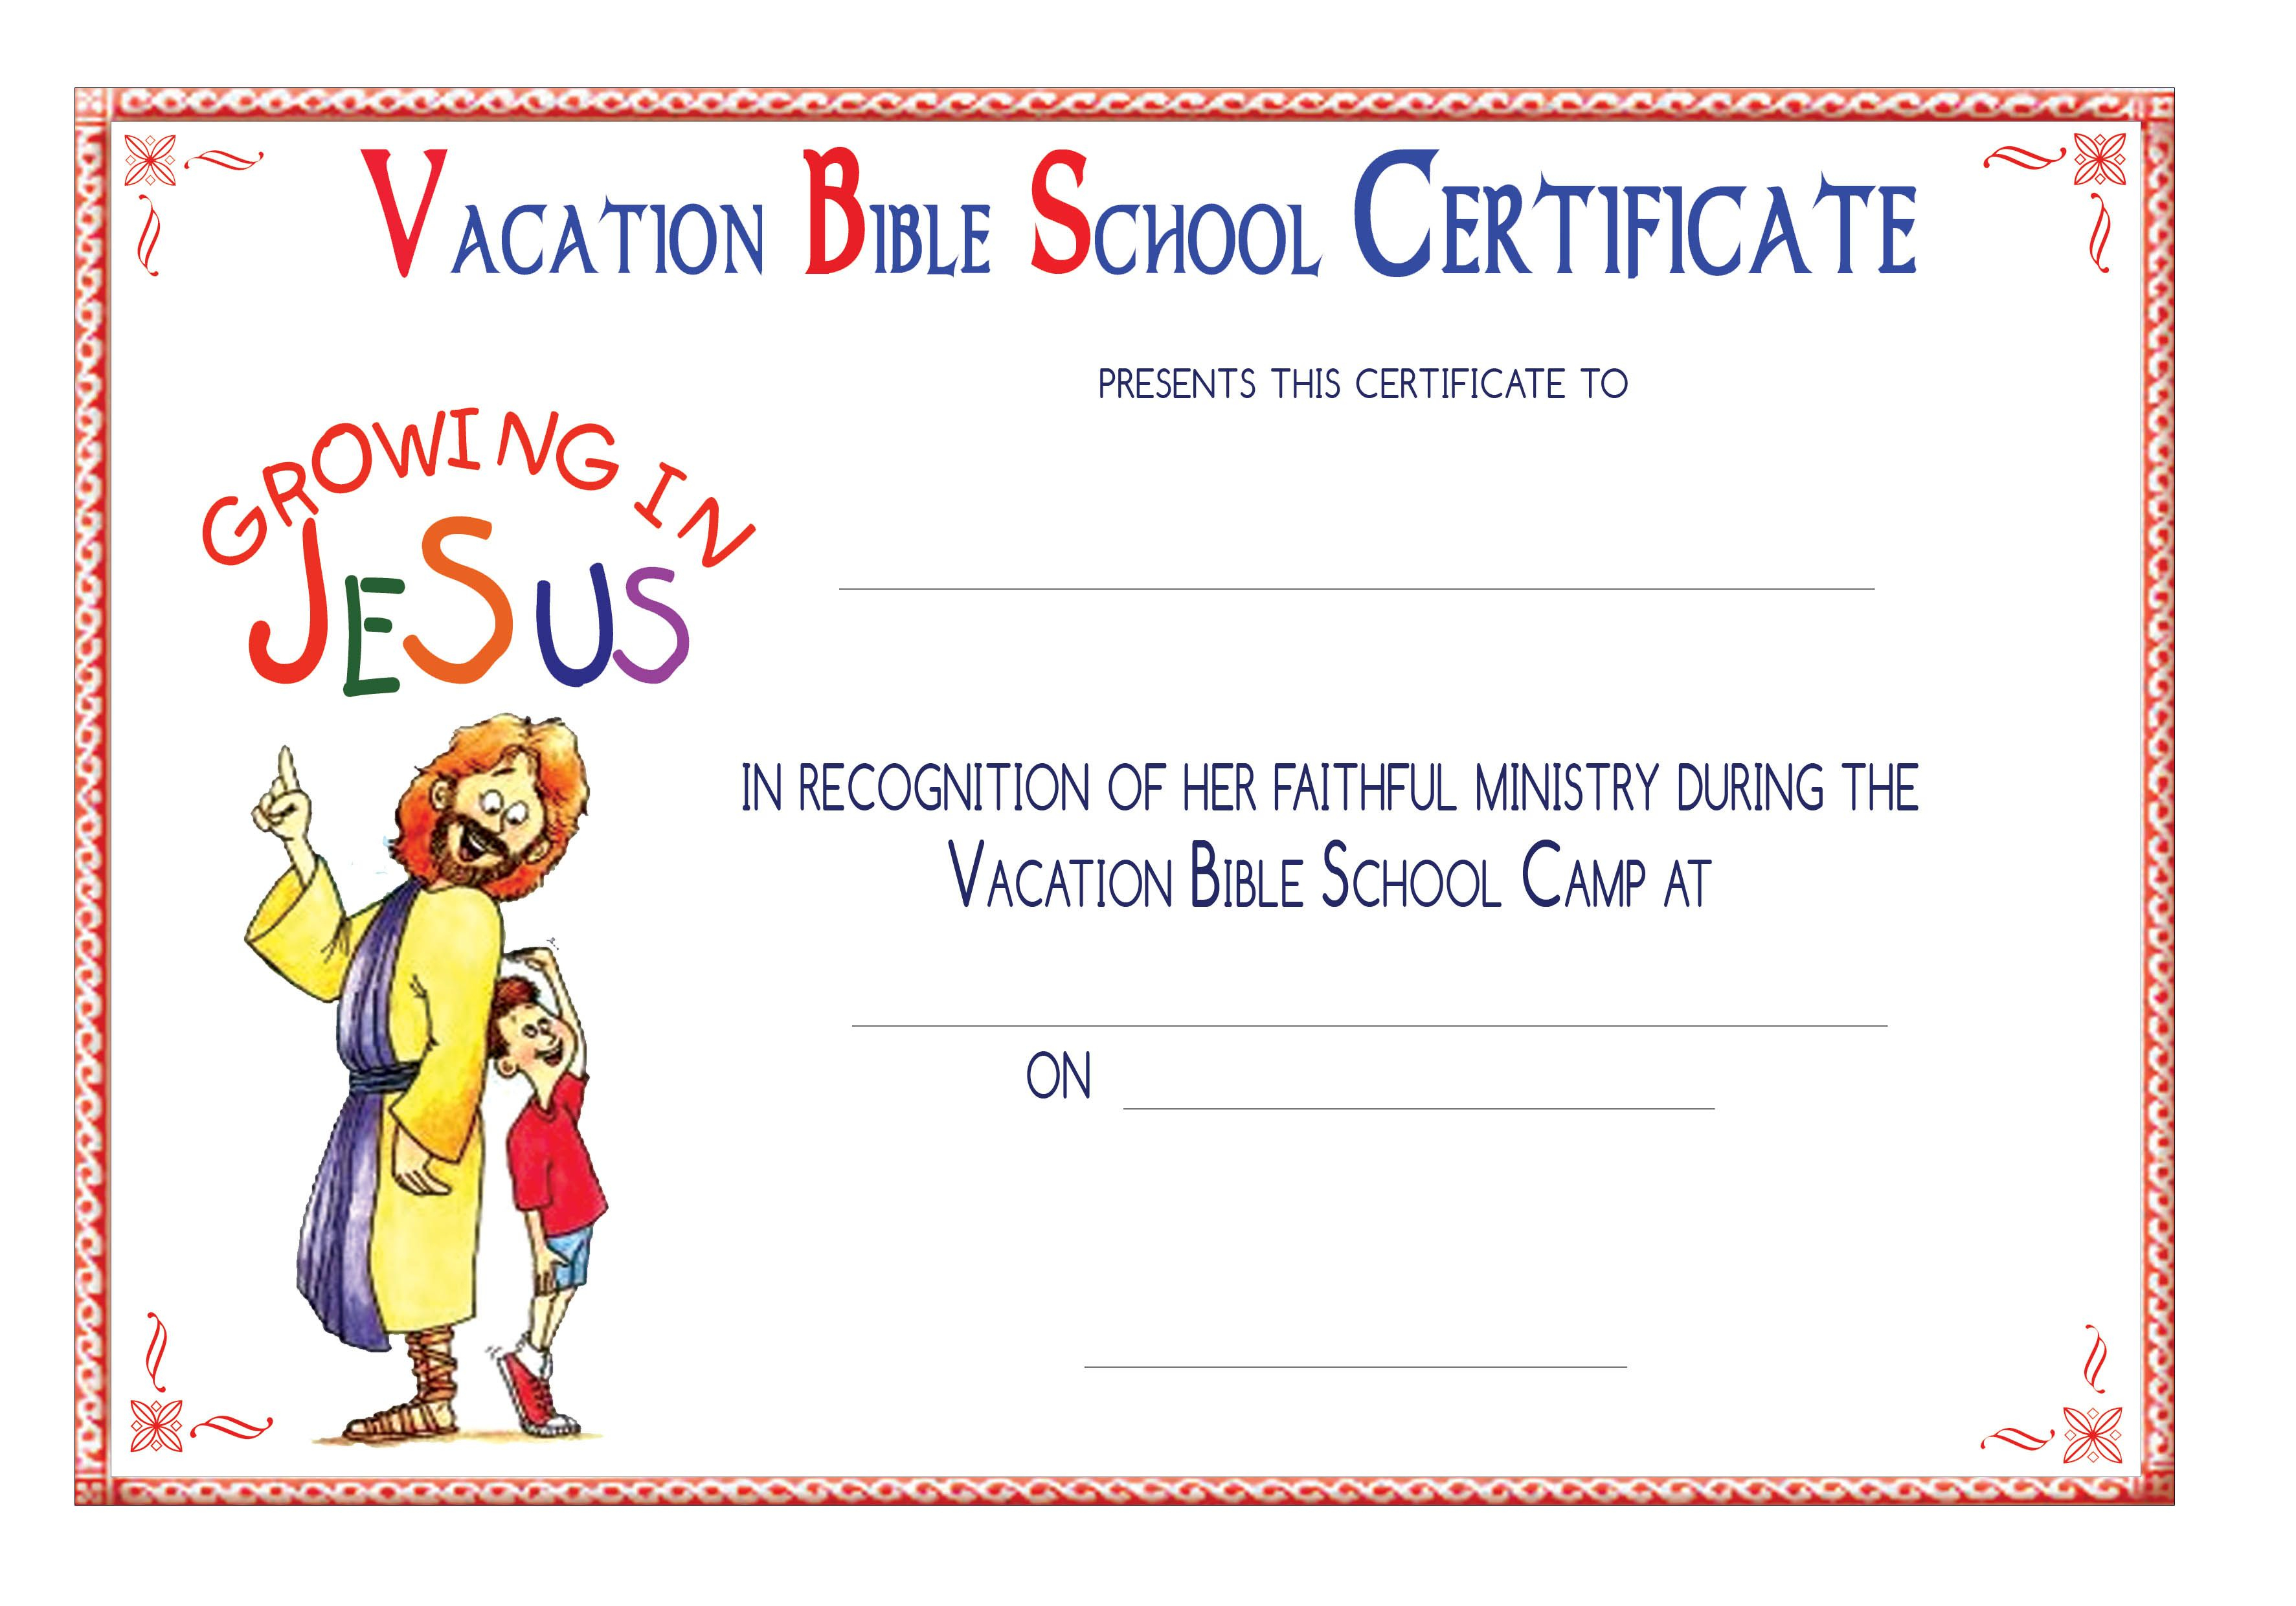 Vbs Certificate Templatesencephalos | Encephalos | Church - Free Printable School Certificates Templates